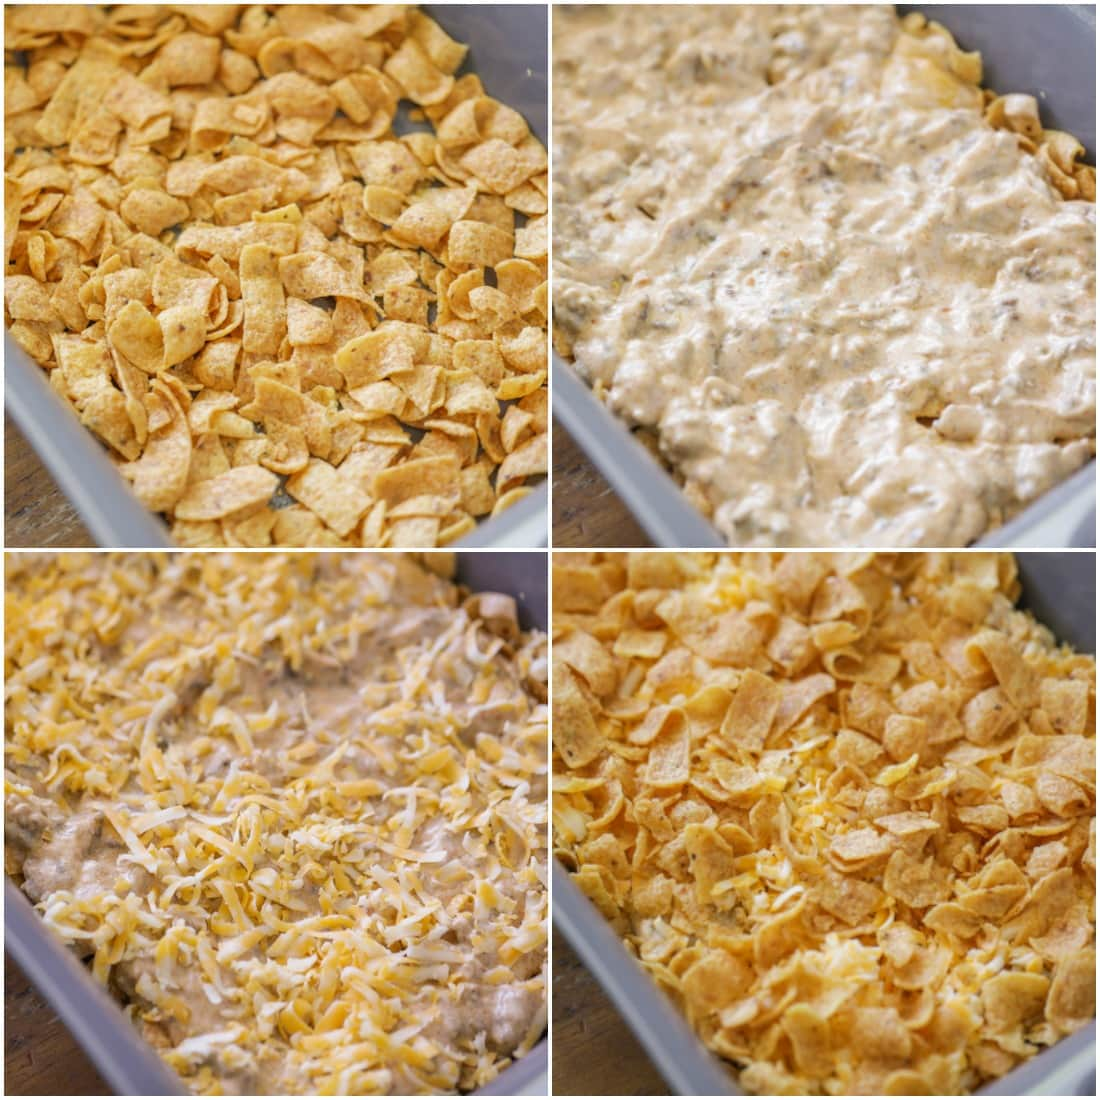 Step by step photos of how to make frito pie layers